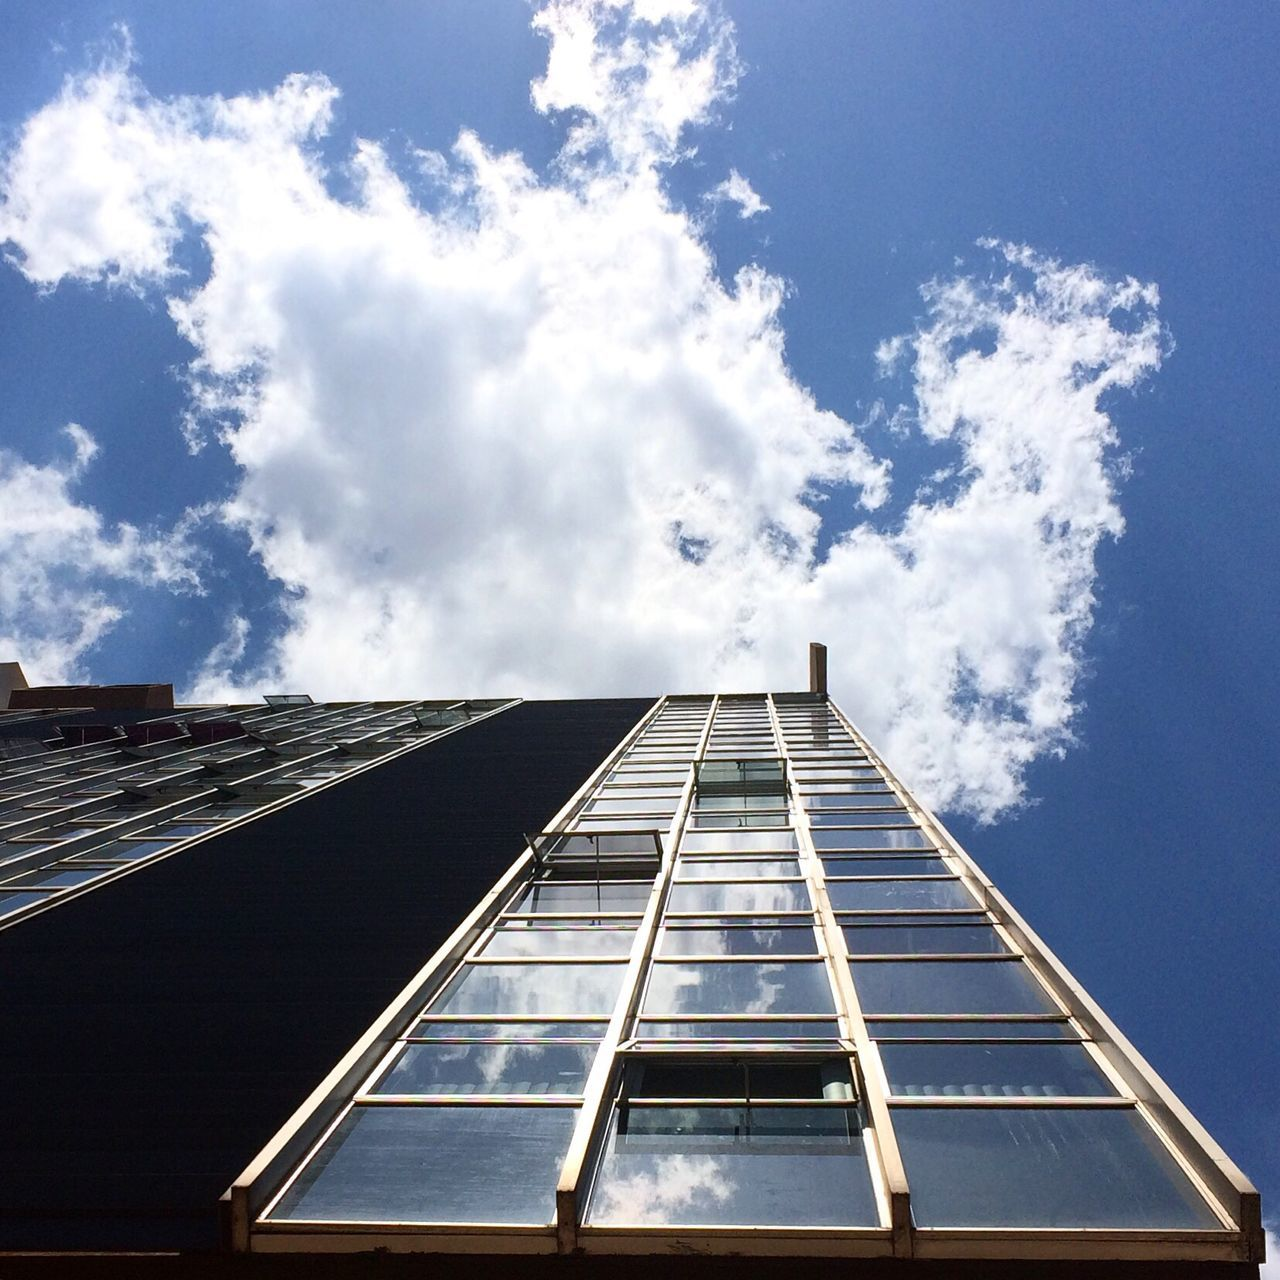 Built Structure Building Exterior Sky Architecture Low Angle View Day Cloud - Sky Outdoors No People Perspective Vertical Symmetry Buildings Construction